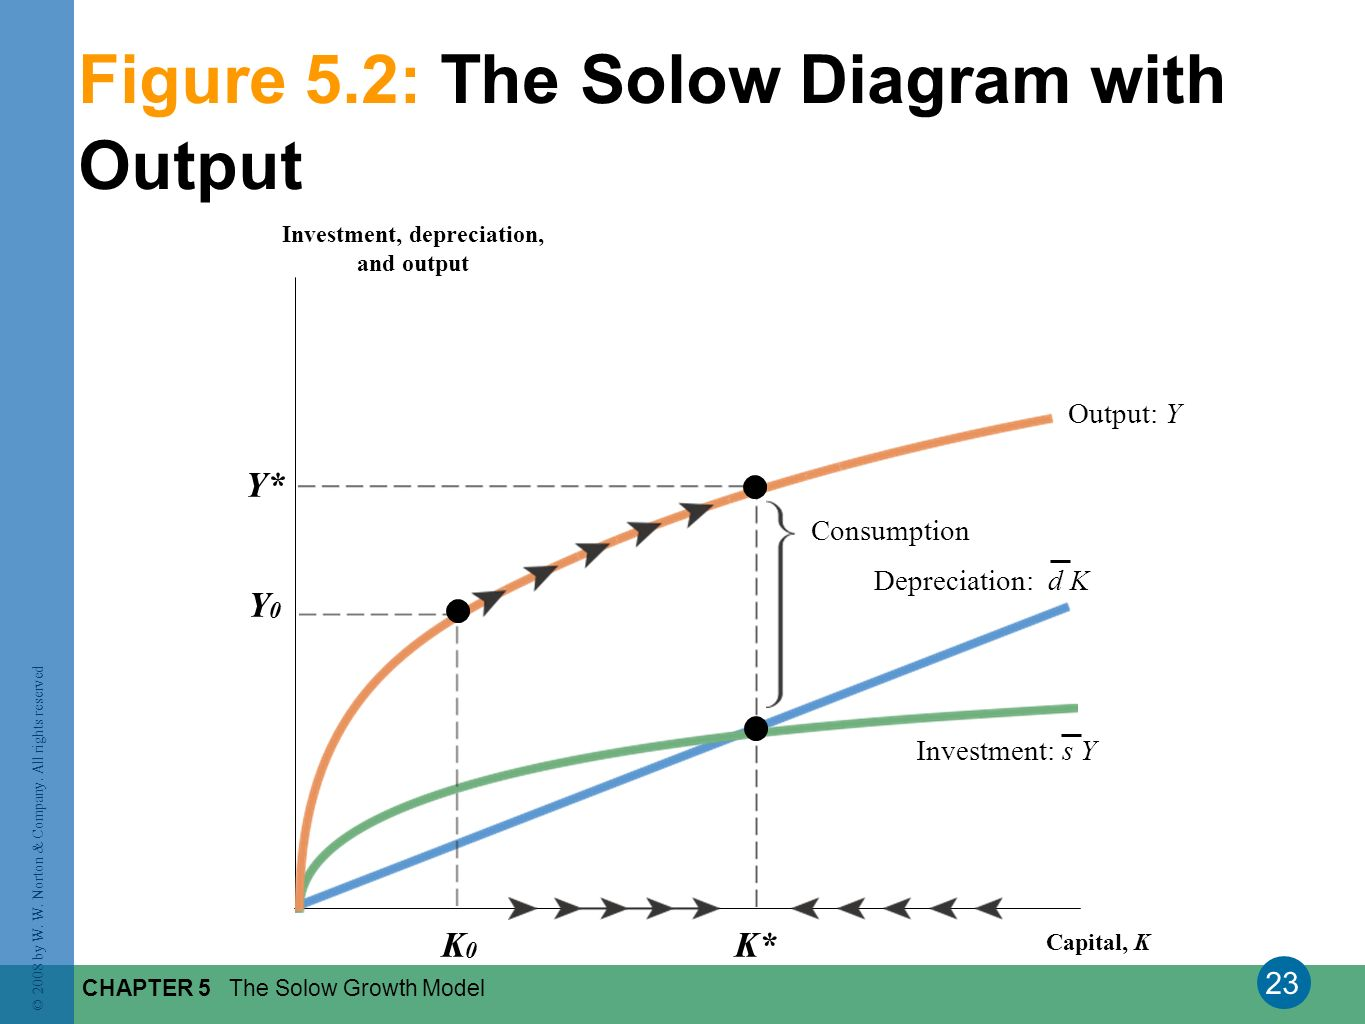 Figure 5.2: The Solow Diagram with Output